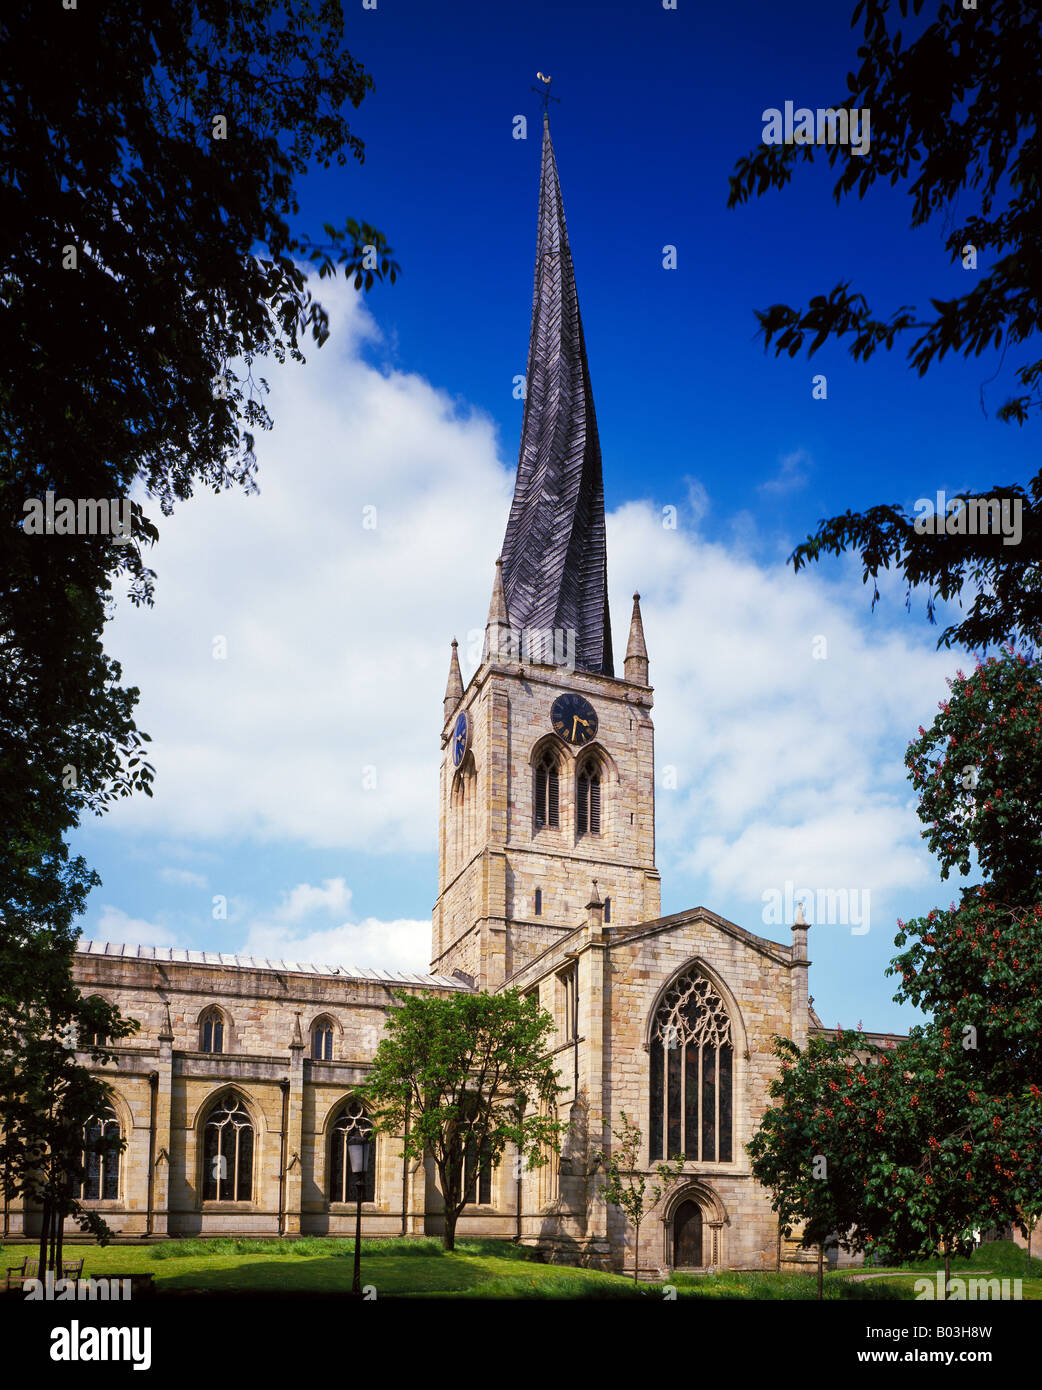 St Mary and All Saints Church Chesterfield Derbyshire England United Kingdom - Stock Image